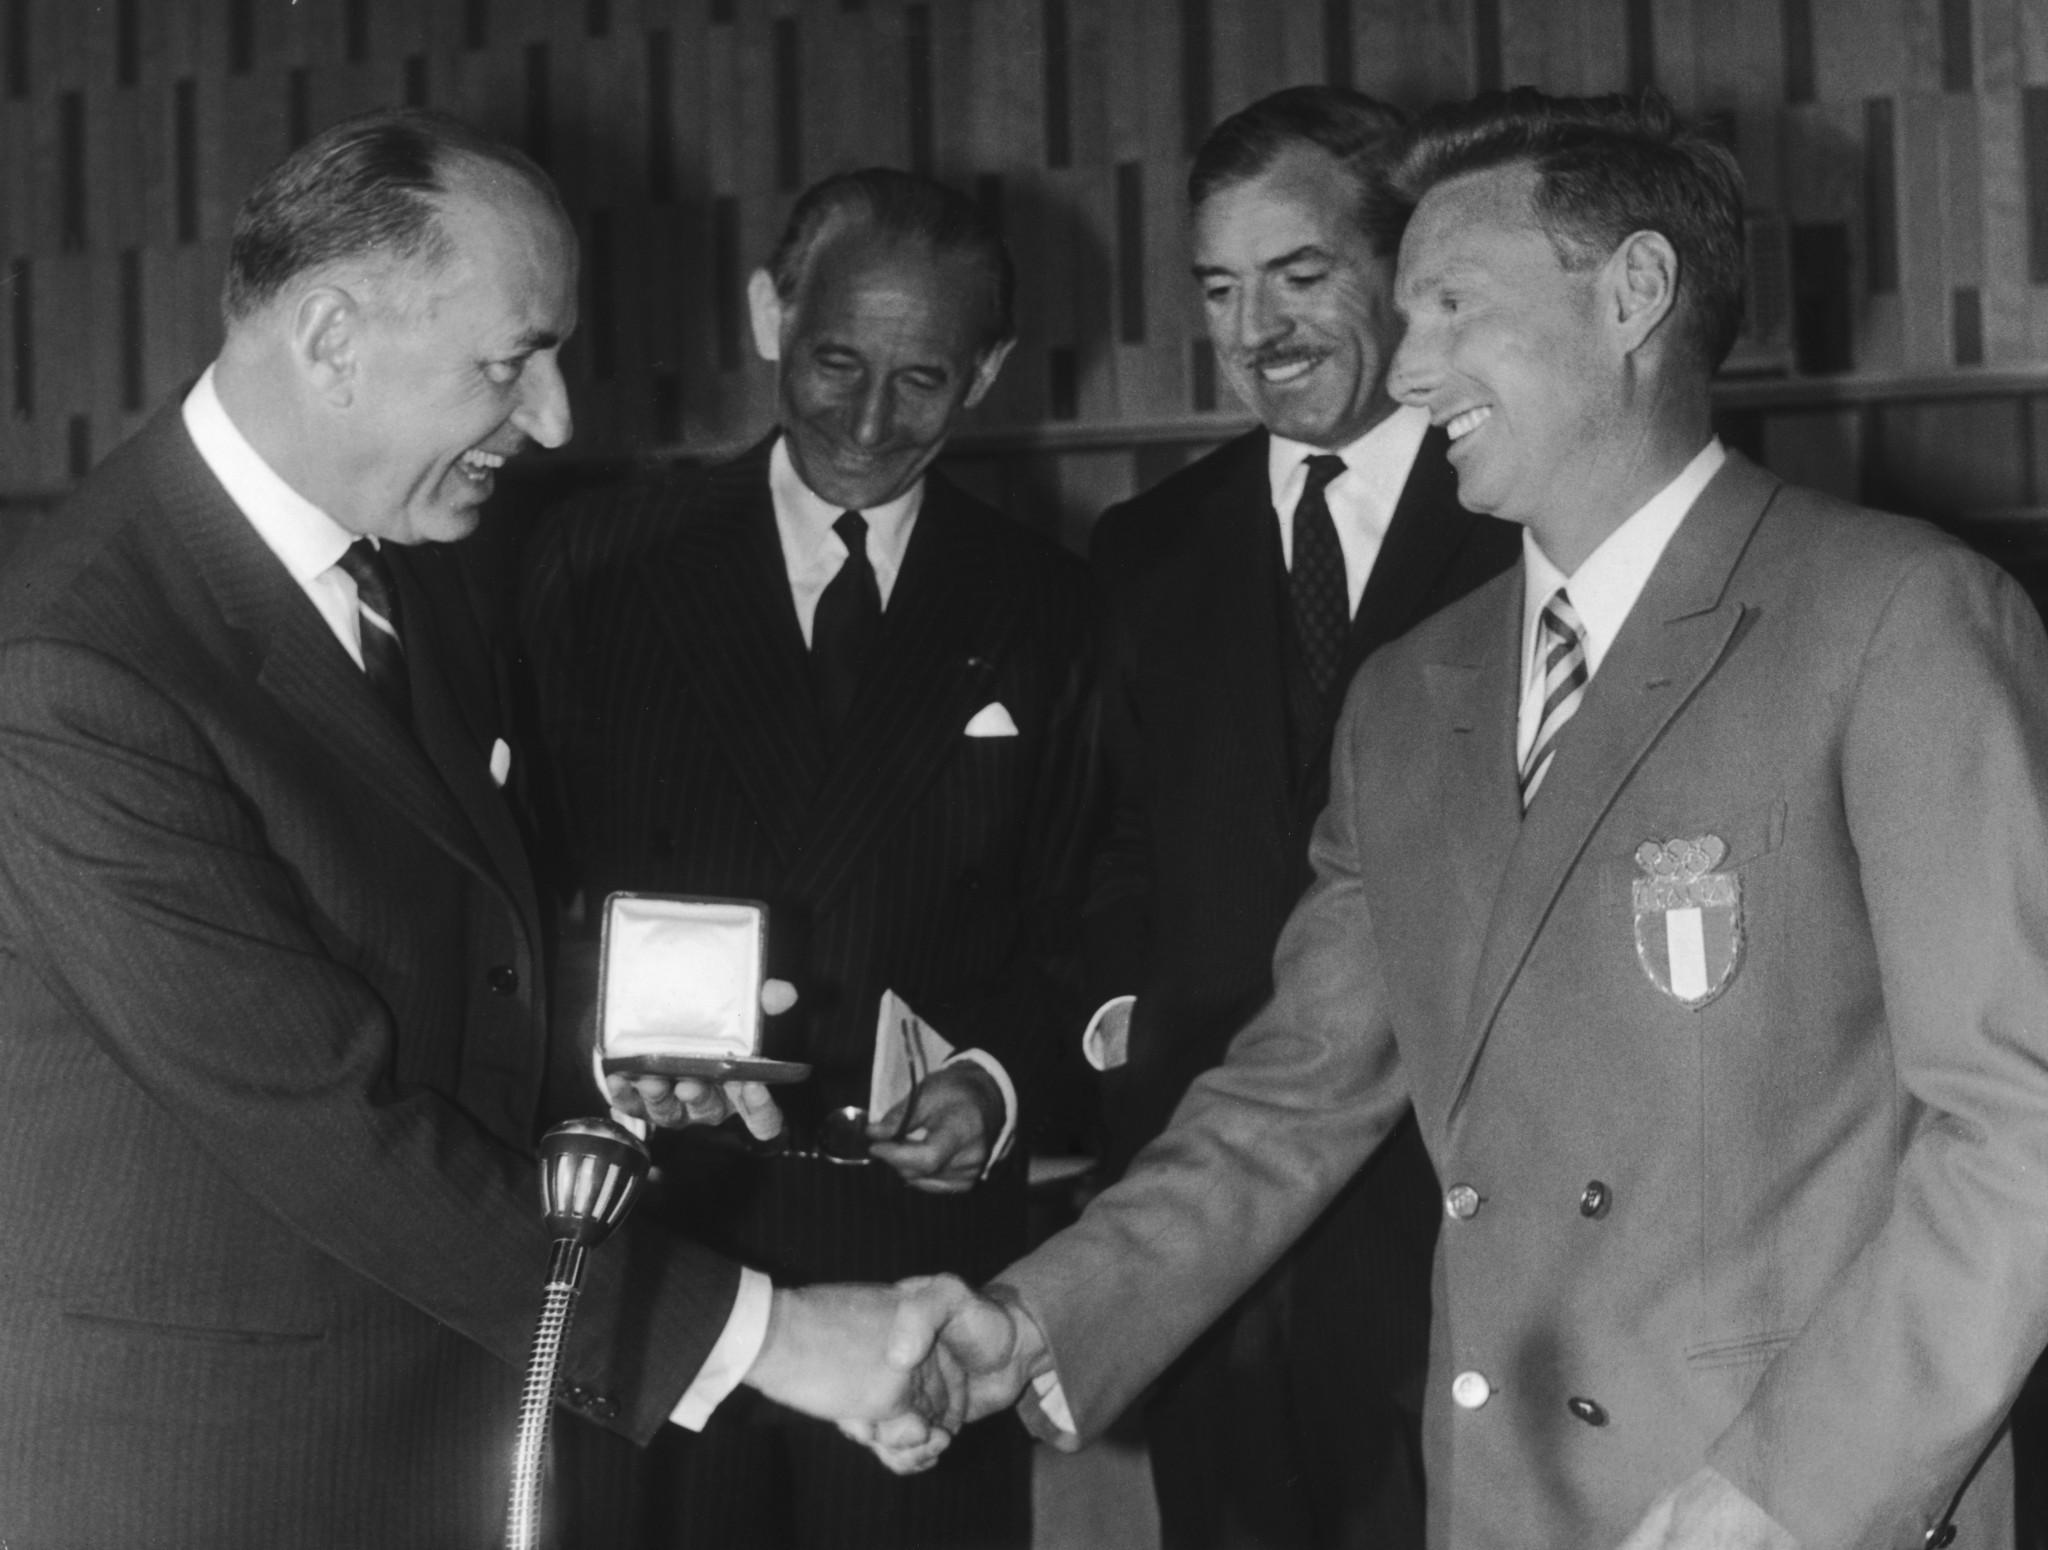 Eugenio Monti, right, was recognised for his sportsmanship at the 1964 Winter Olympics in Innsbruck ©Getty Images